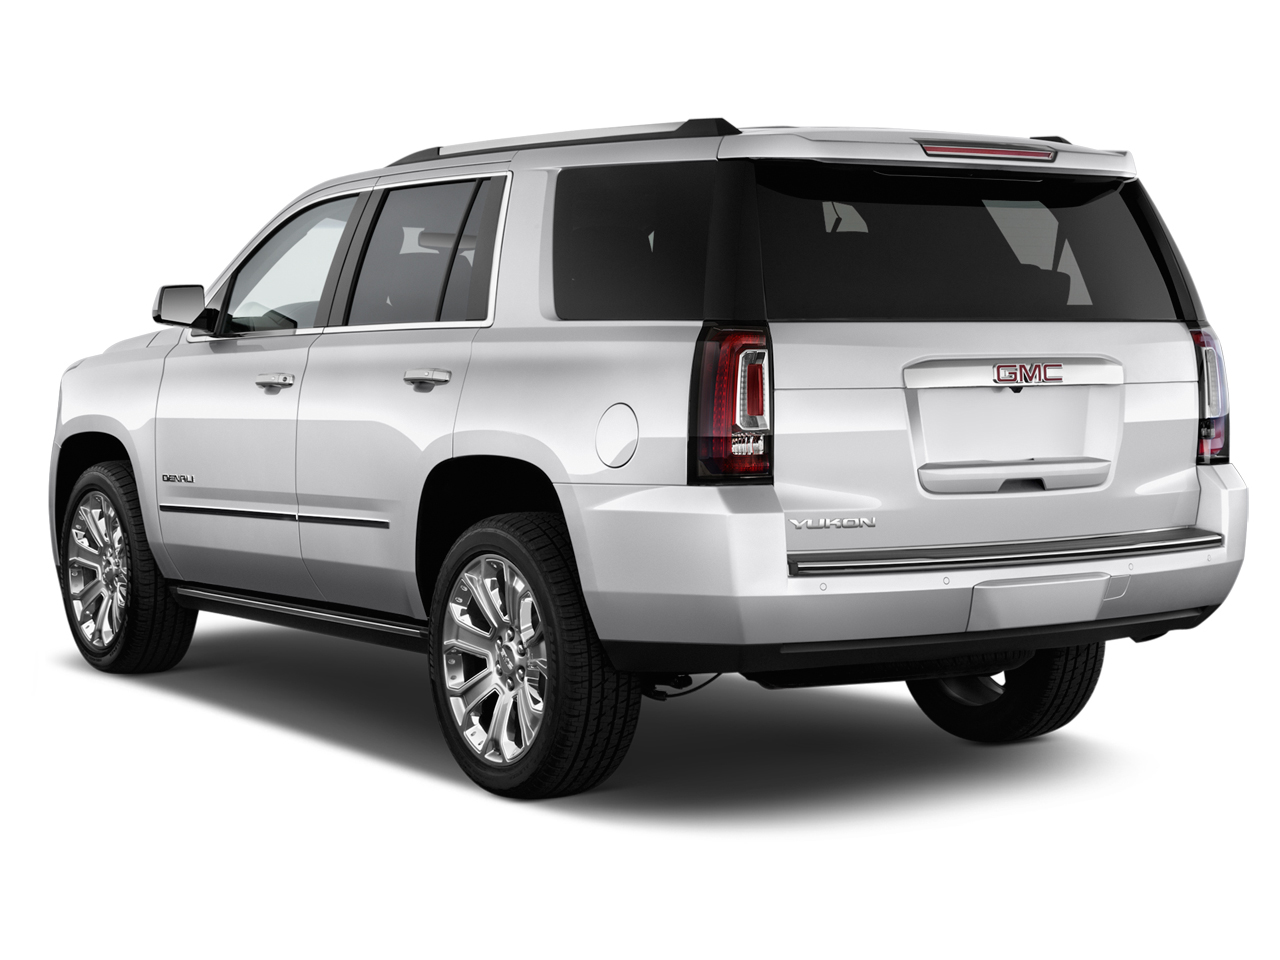 gmc yukon denali 2018 6 2l denali in uae new car prices specs reviews photos yallamotor. Black Bedroom Furniture Sets. Home Design Ideas